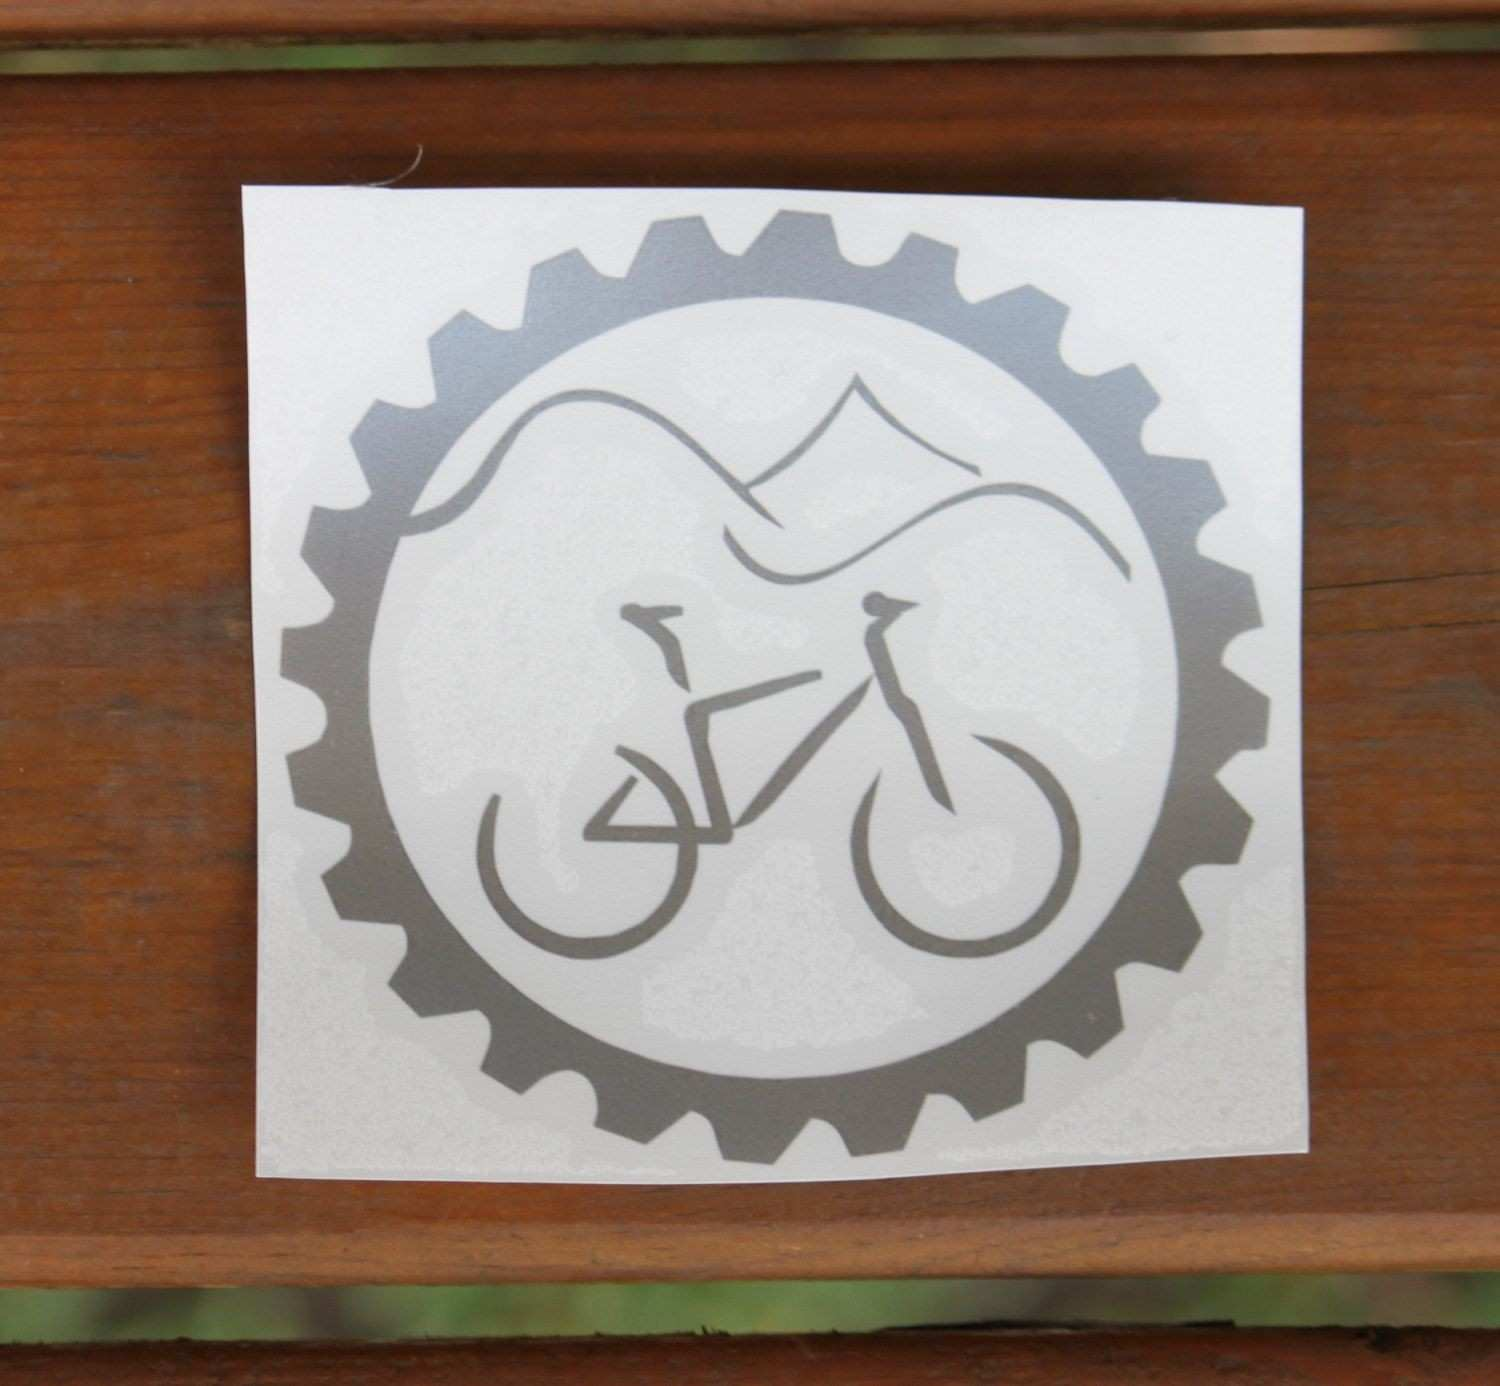 Mountain Bike Car Decal Car Sticker Window Bike Decal Mountain